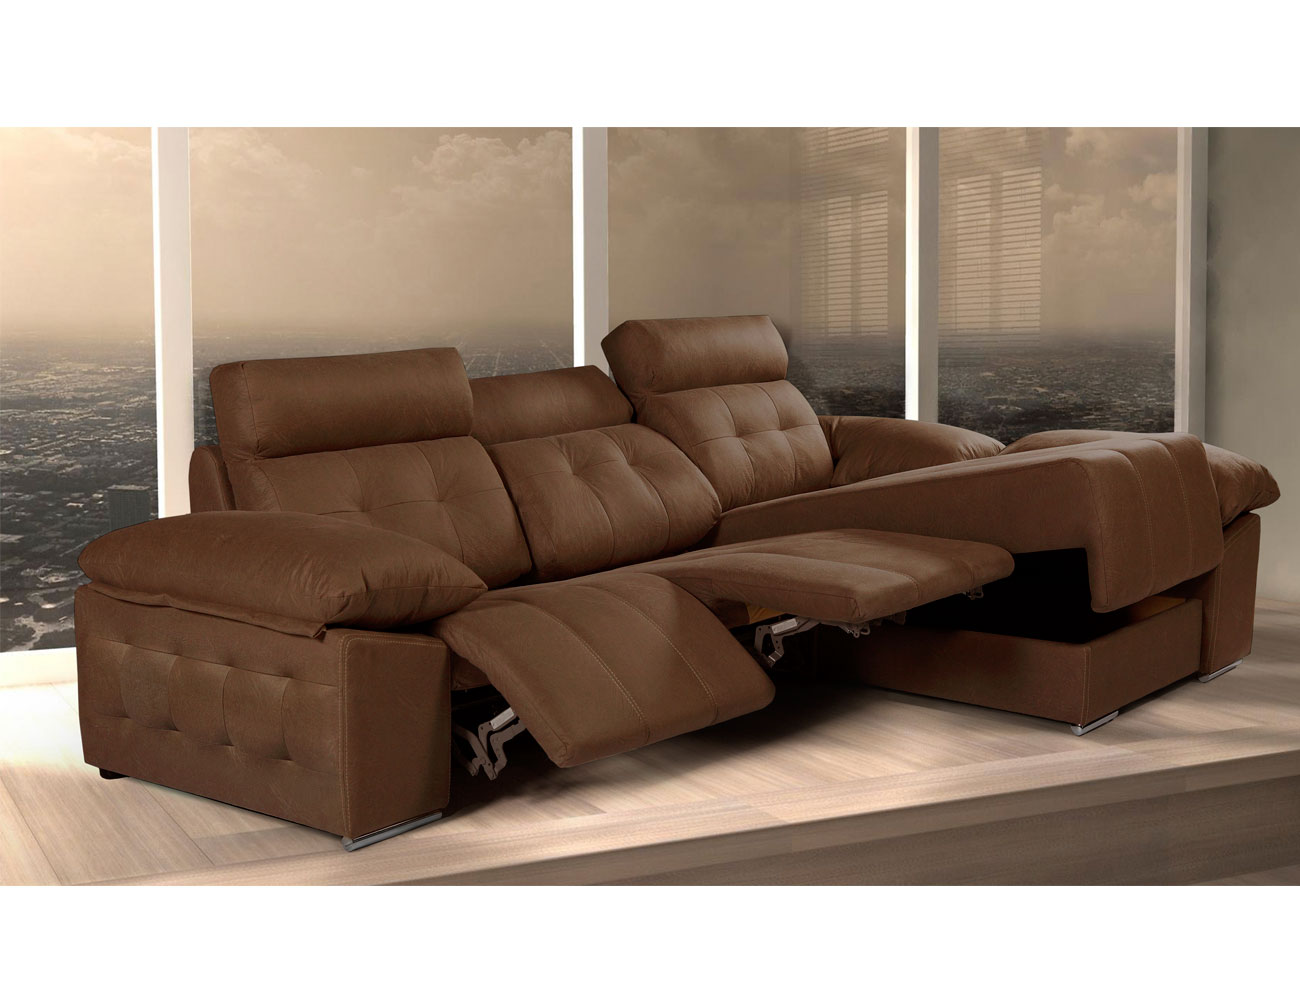 Sofa chaiselongue relax arcon electrico capitone1